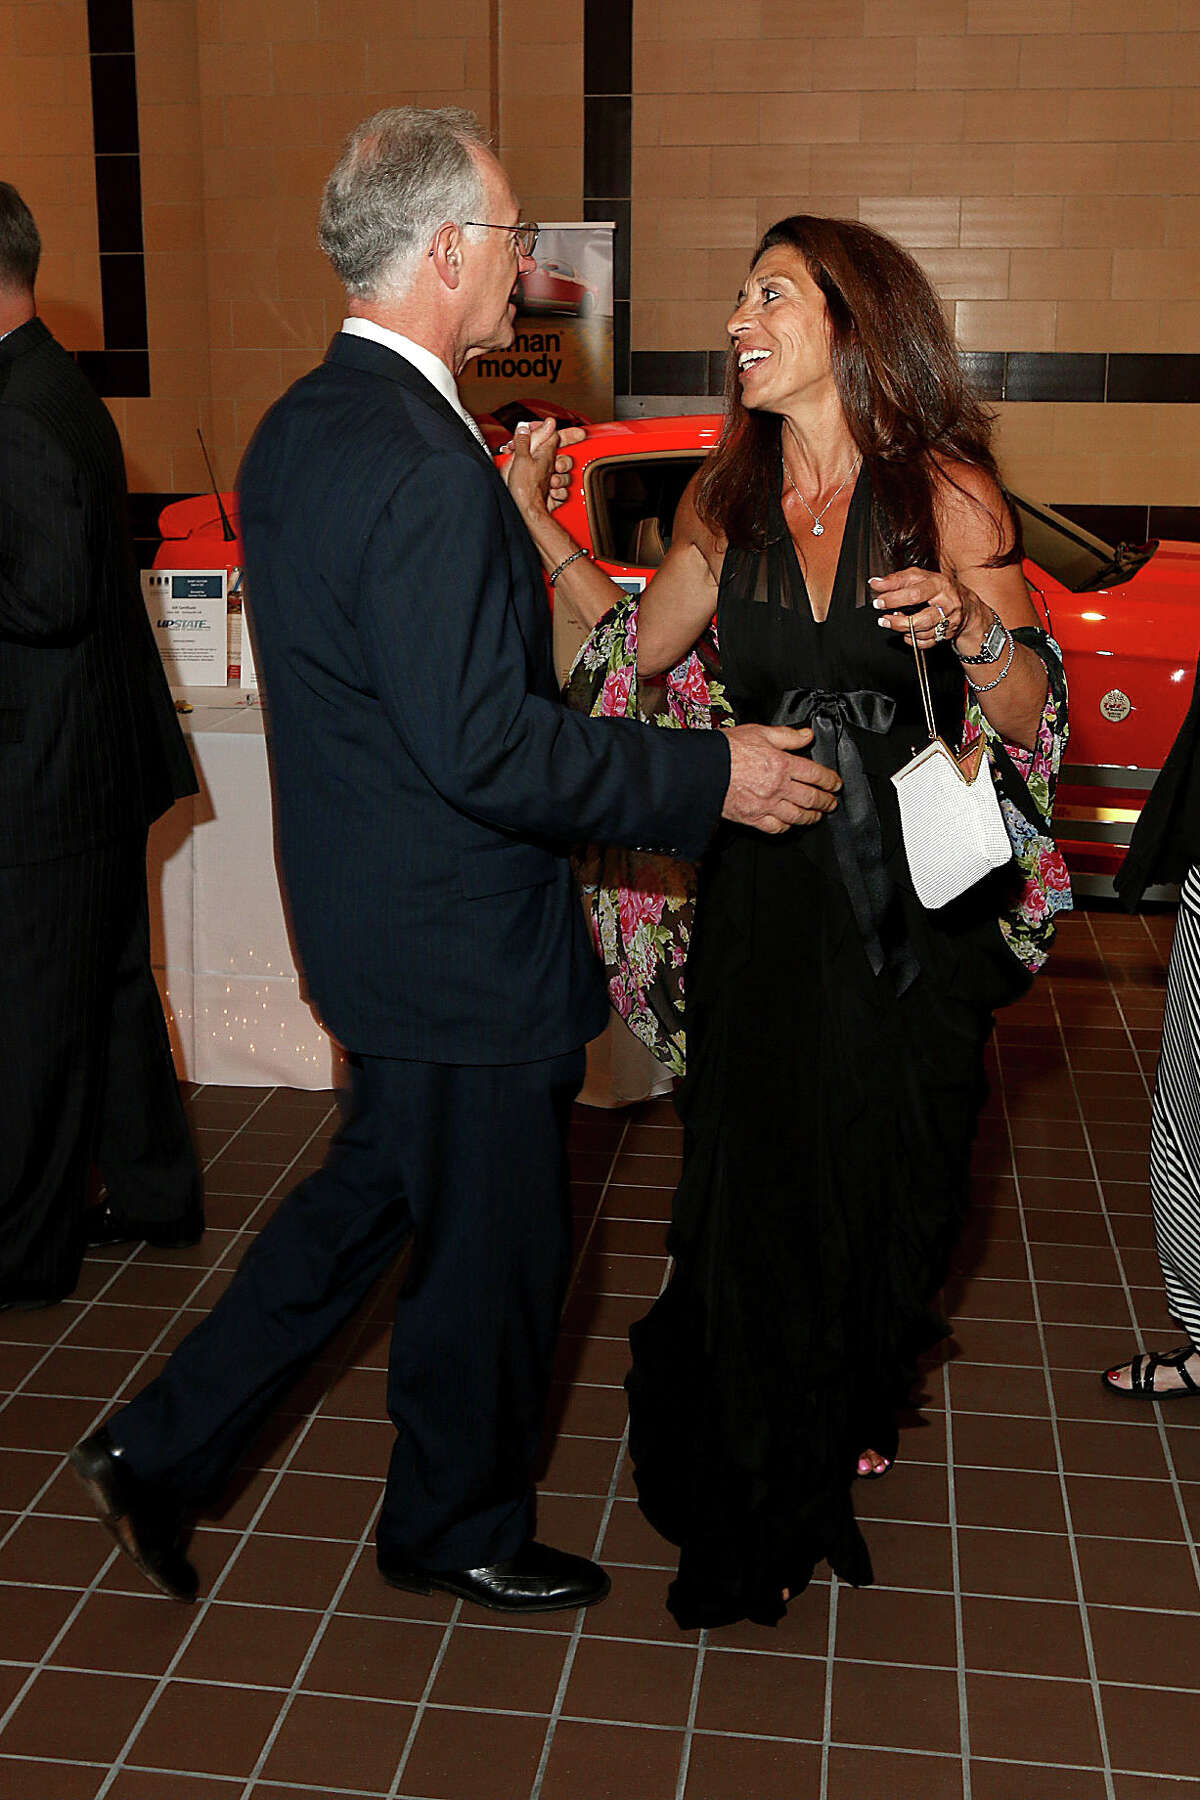 Were you Seen at the Saratoga Automobile Museum's Annual Summer Gala, celebrated at the museum in Saratoga Springs on Saturday, June 21, 2014? Visit the museum's web site at http://saratogaautomuseum.org/